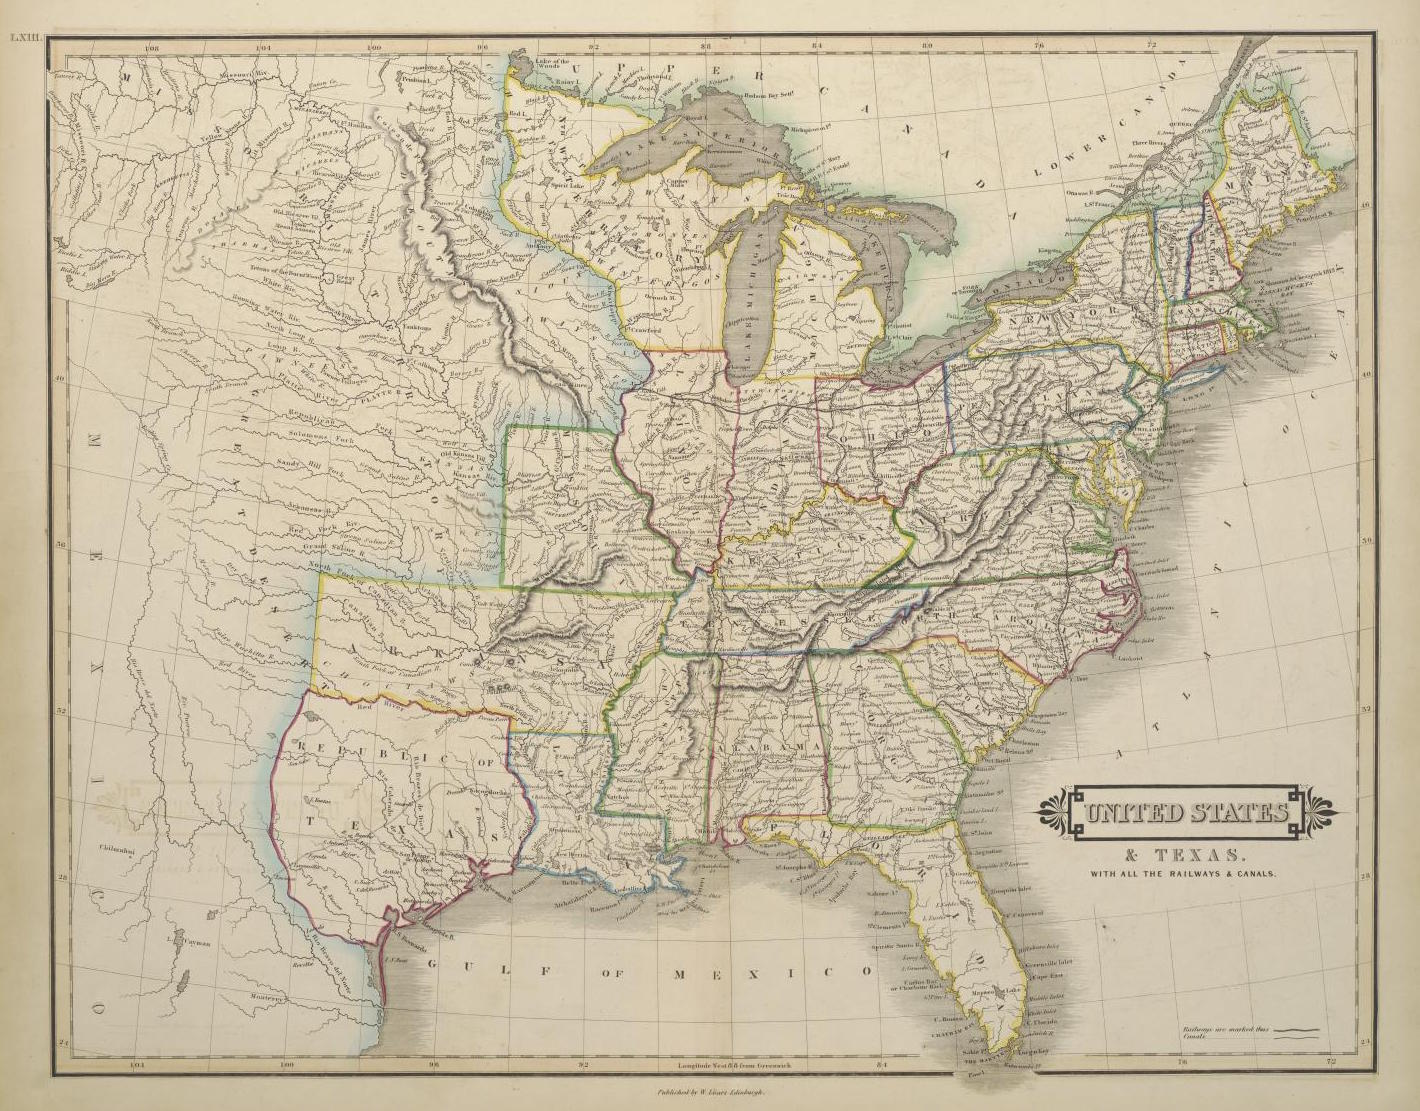 Map Of Texas 1836.A Map Of The United States And Republic Of Texas Including Railways